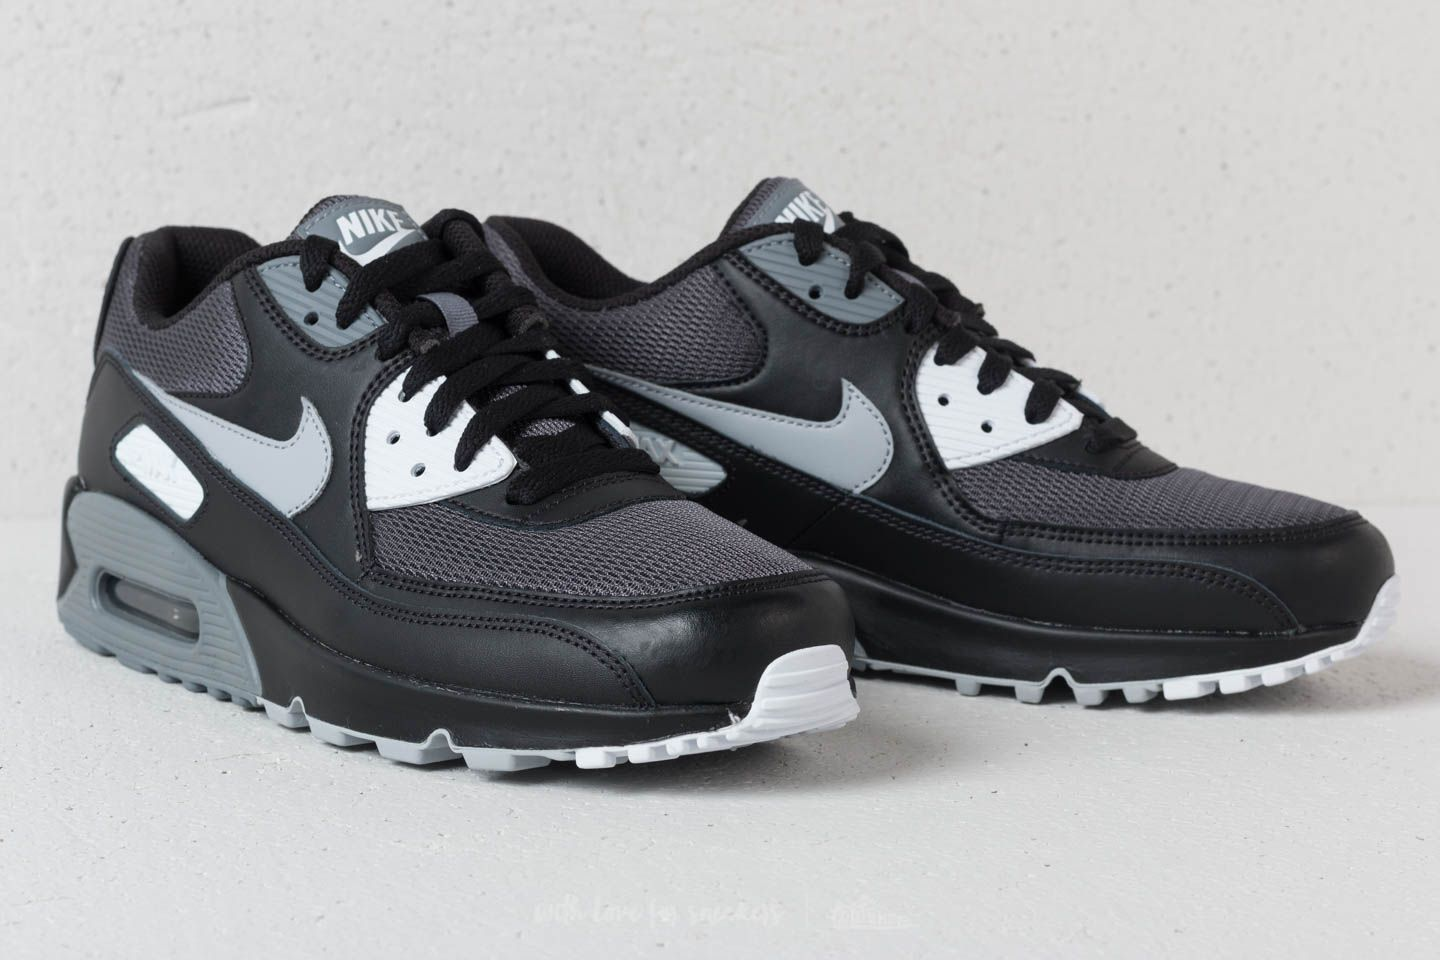 Nike Air Max 90 Essential Trainer | Dark GreyDark GreyBlack